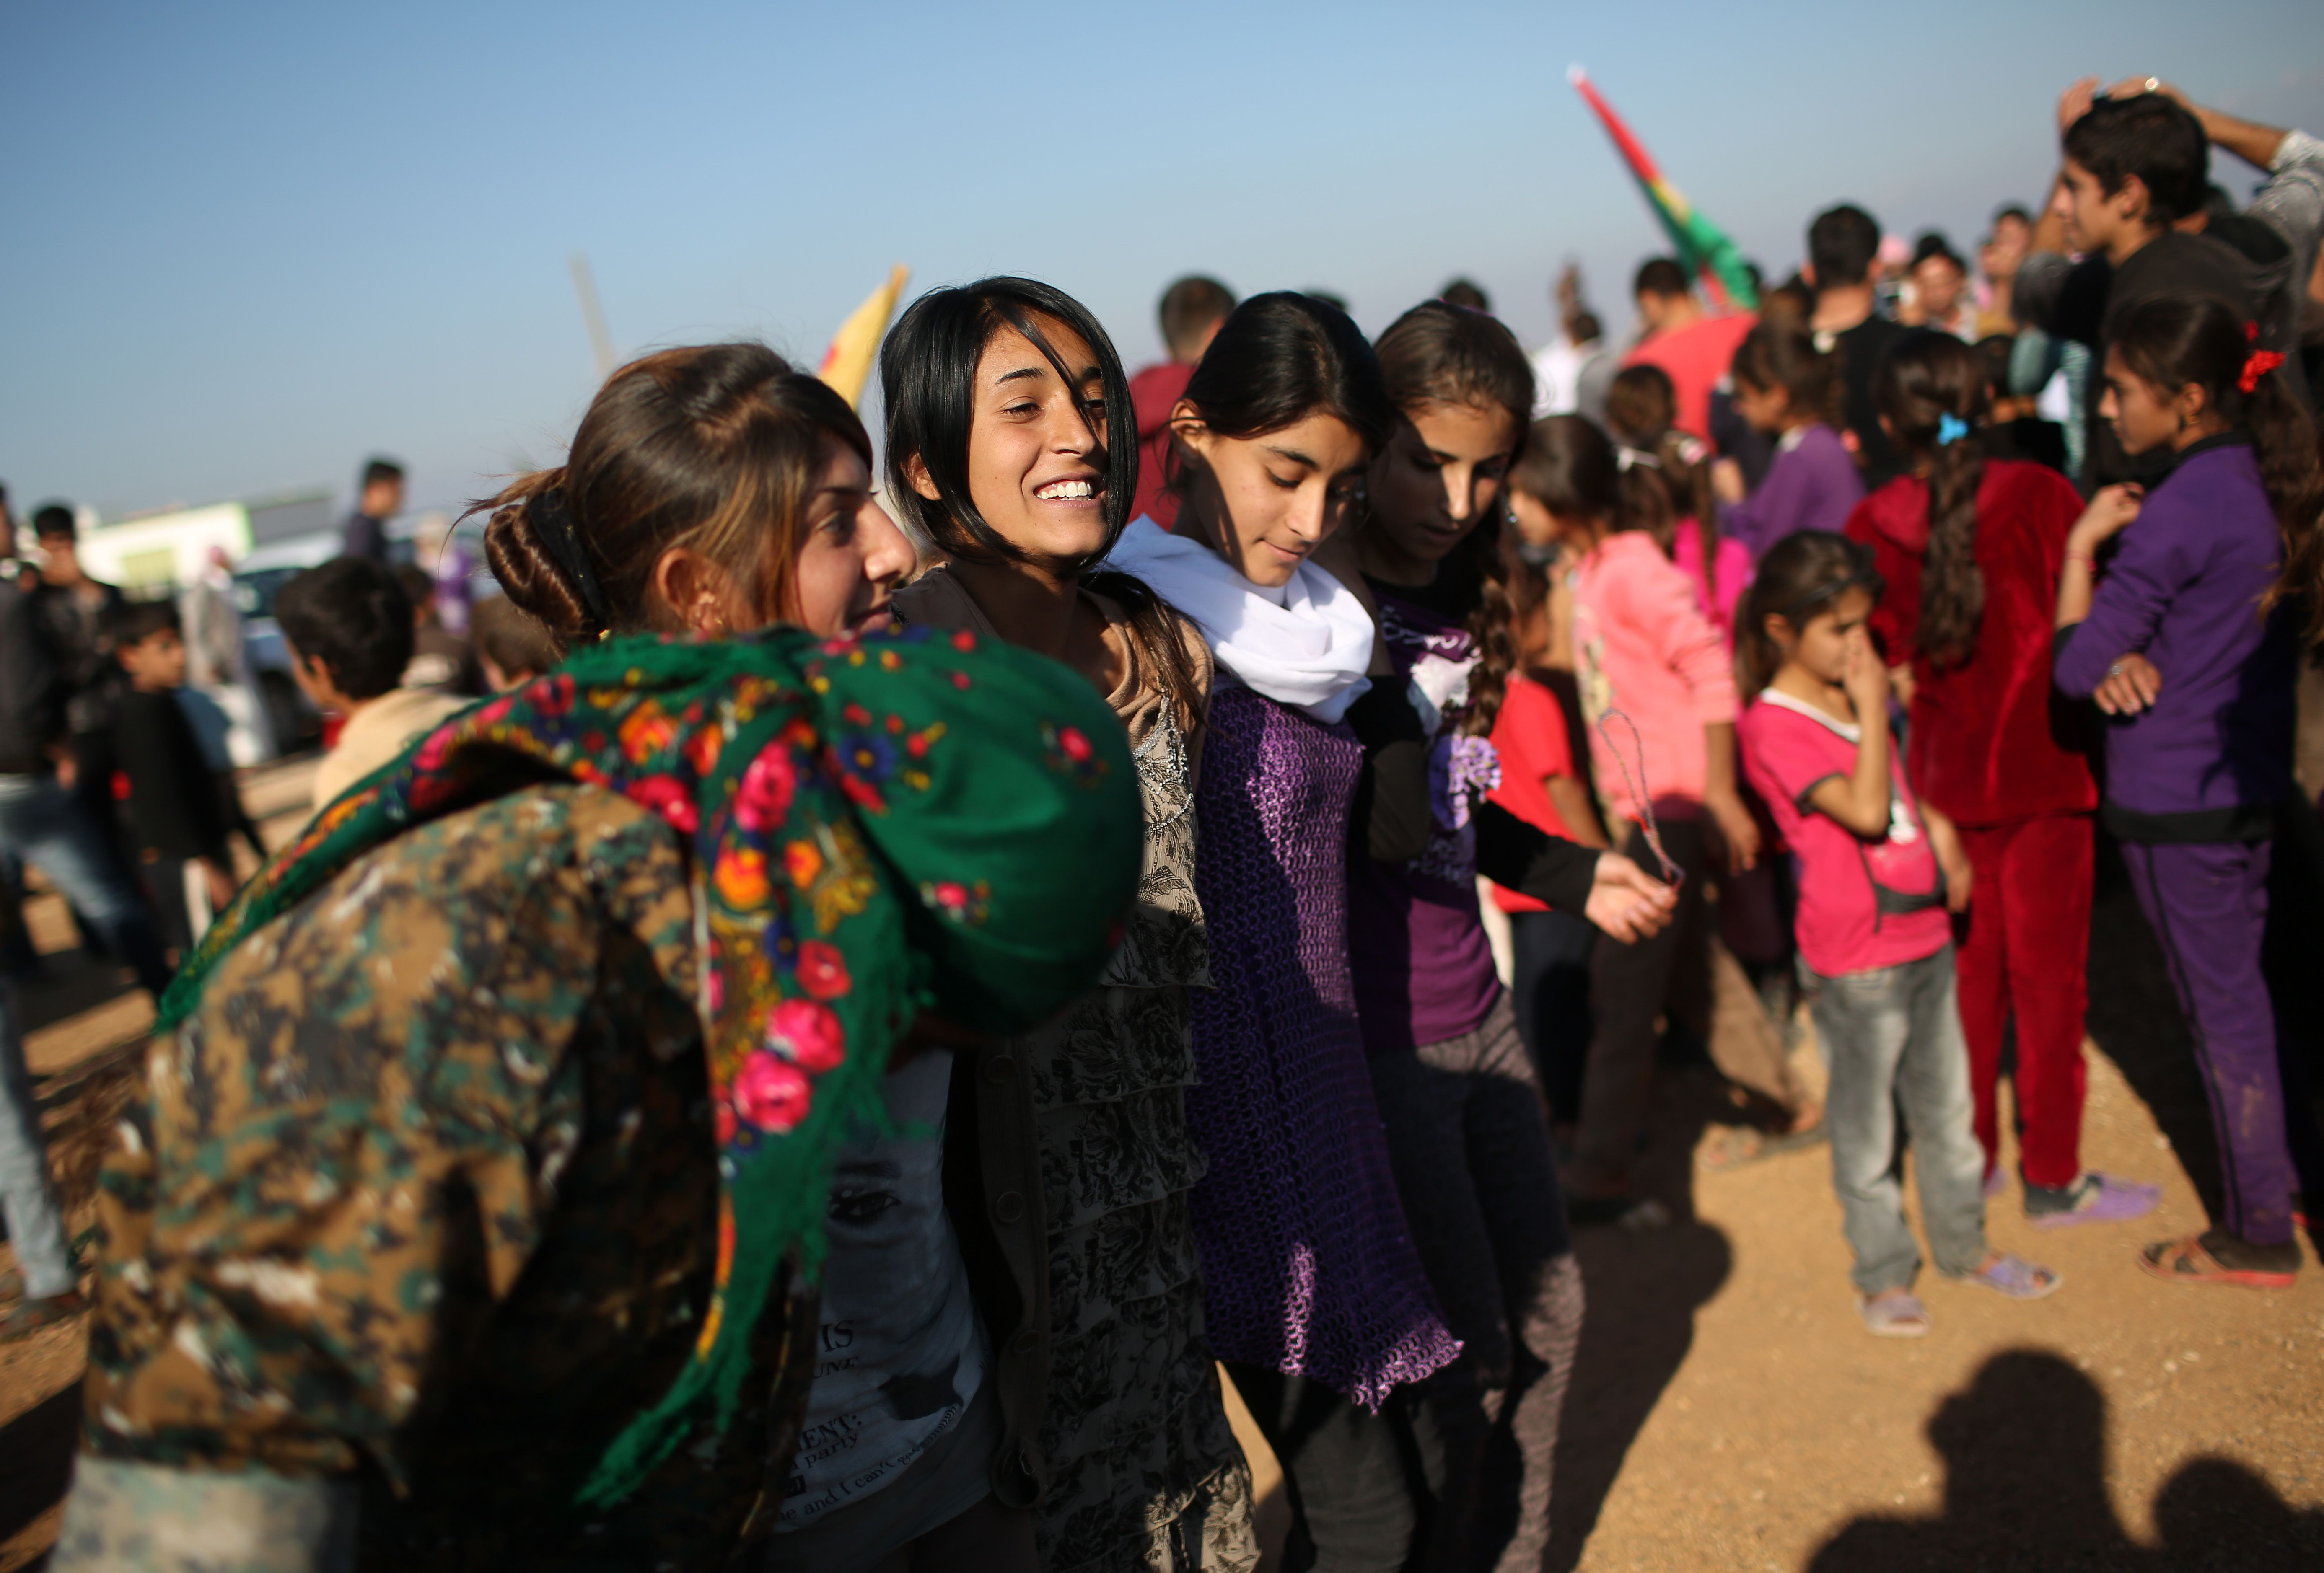 DEREK, SYRIA - NOVEMBER 13: Yazidi refugees celebrate news of the liberation of her homeland of Sinjar from ISIL extremists, while at a refugee camp on November 13, 2015 in Derek, Rojava, Syria. Kurdish Peshmerga forces in Iraq say they have retaken Sinjar, with the help of airstrikes from U.S. led coalition warplanes. The Islamic State captured Sinjar in August 2014, killing many and sexually enslaving thousands of Yazidi women. (Photo by John Moore/Getty Images)